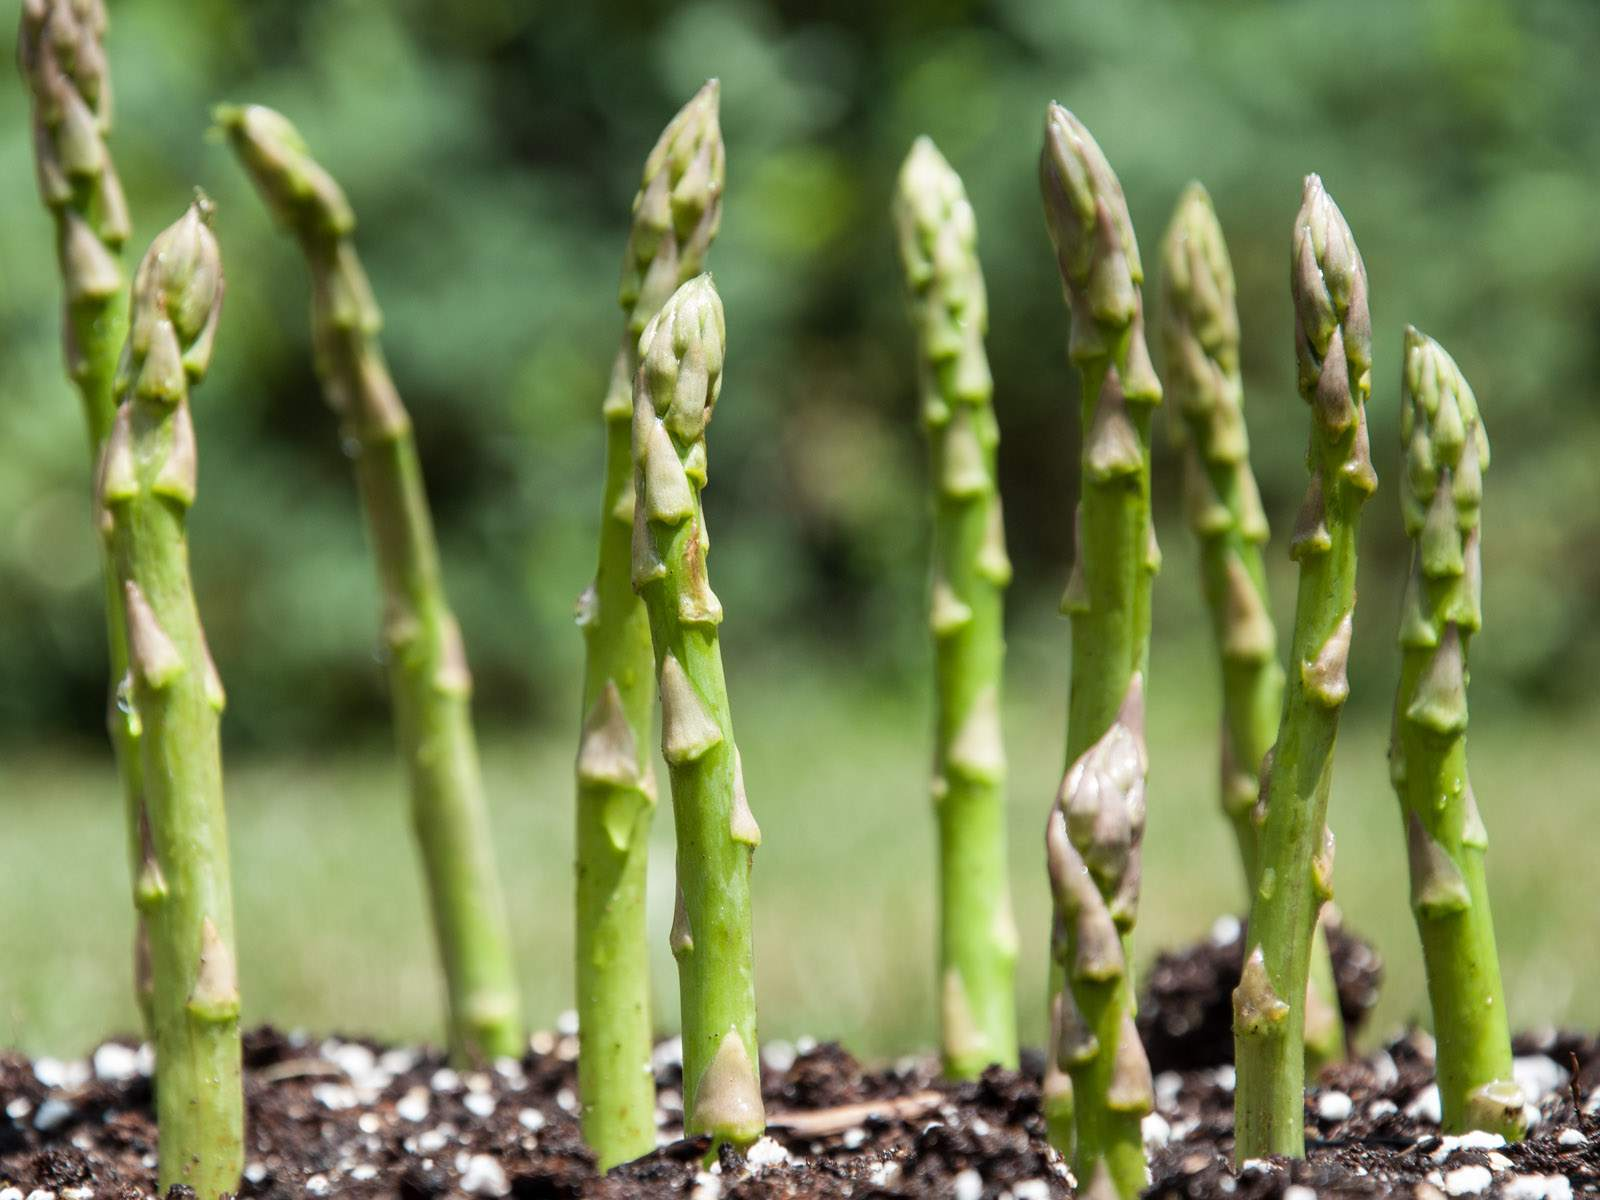 Rows of growing Asparagus